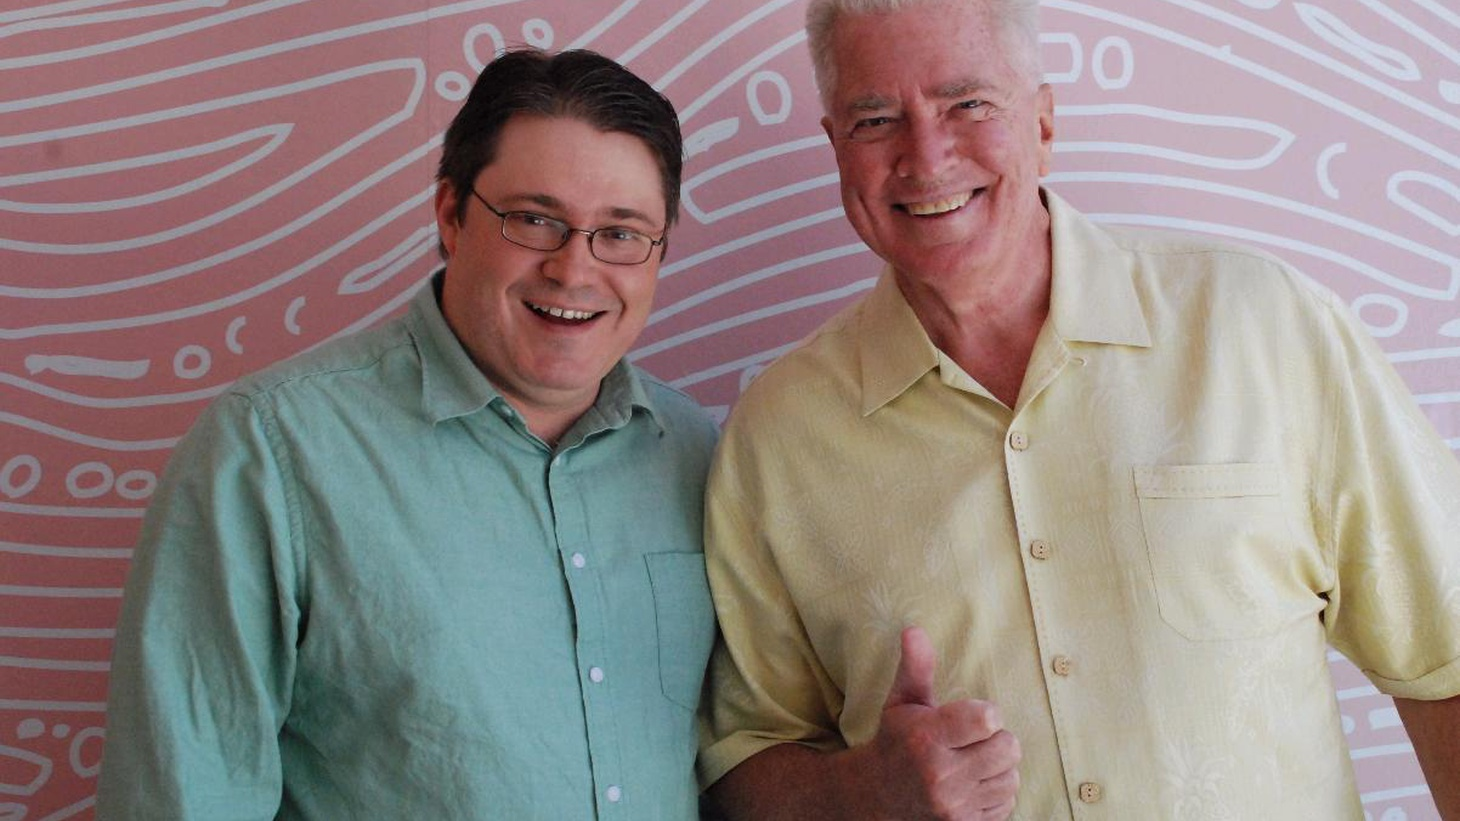 """Huell Howser is a beloved television personality who explores the natural wonders and people of our fine state as the host of """"California's Gold"""". He dedicated his Guest DJ set to 5 country women he loves – Dolly, Tammy, Loretta, Brenda and June. As always, his gregarious personality shines through as he explores these songs close to his heart. California's Gold can be seen locally on KCET."""